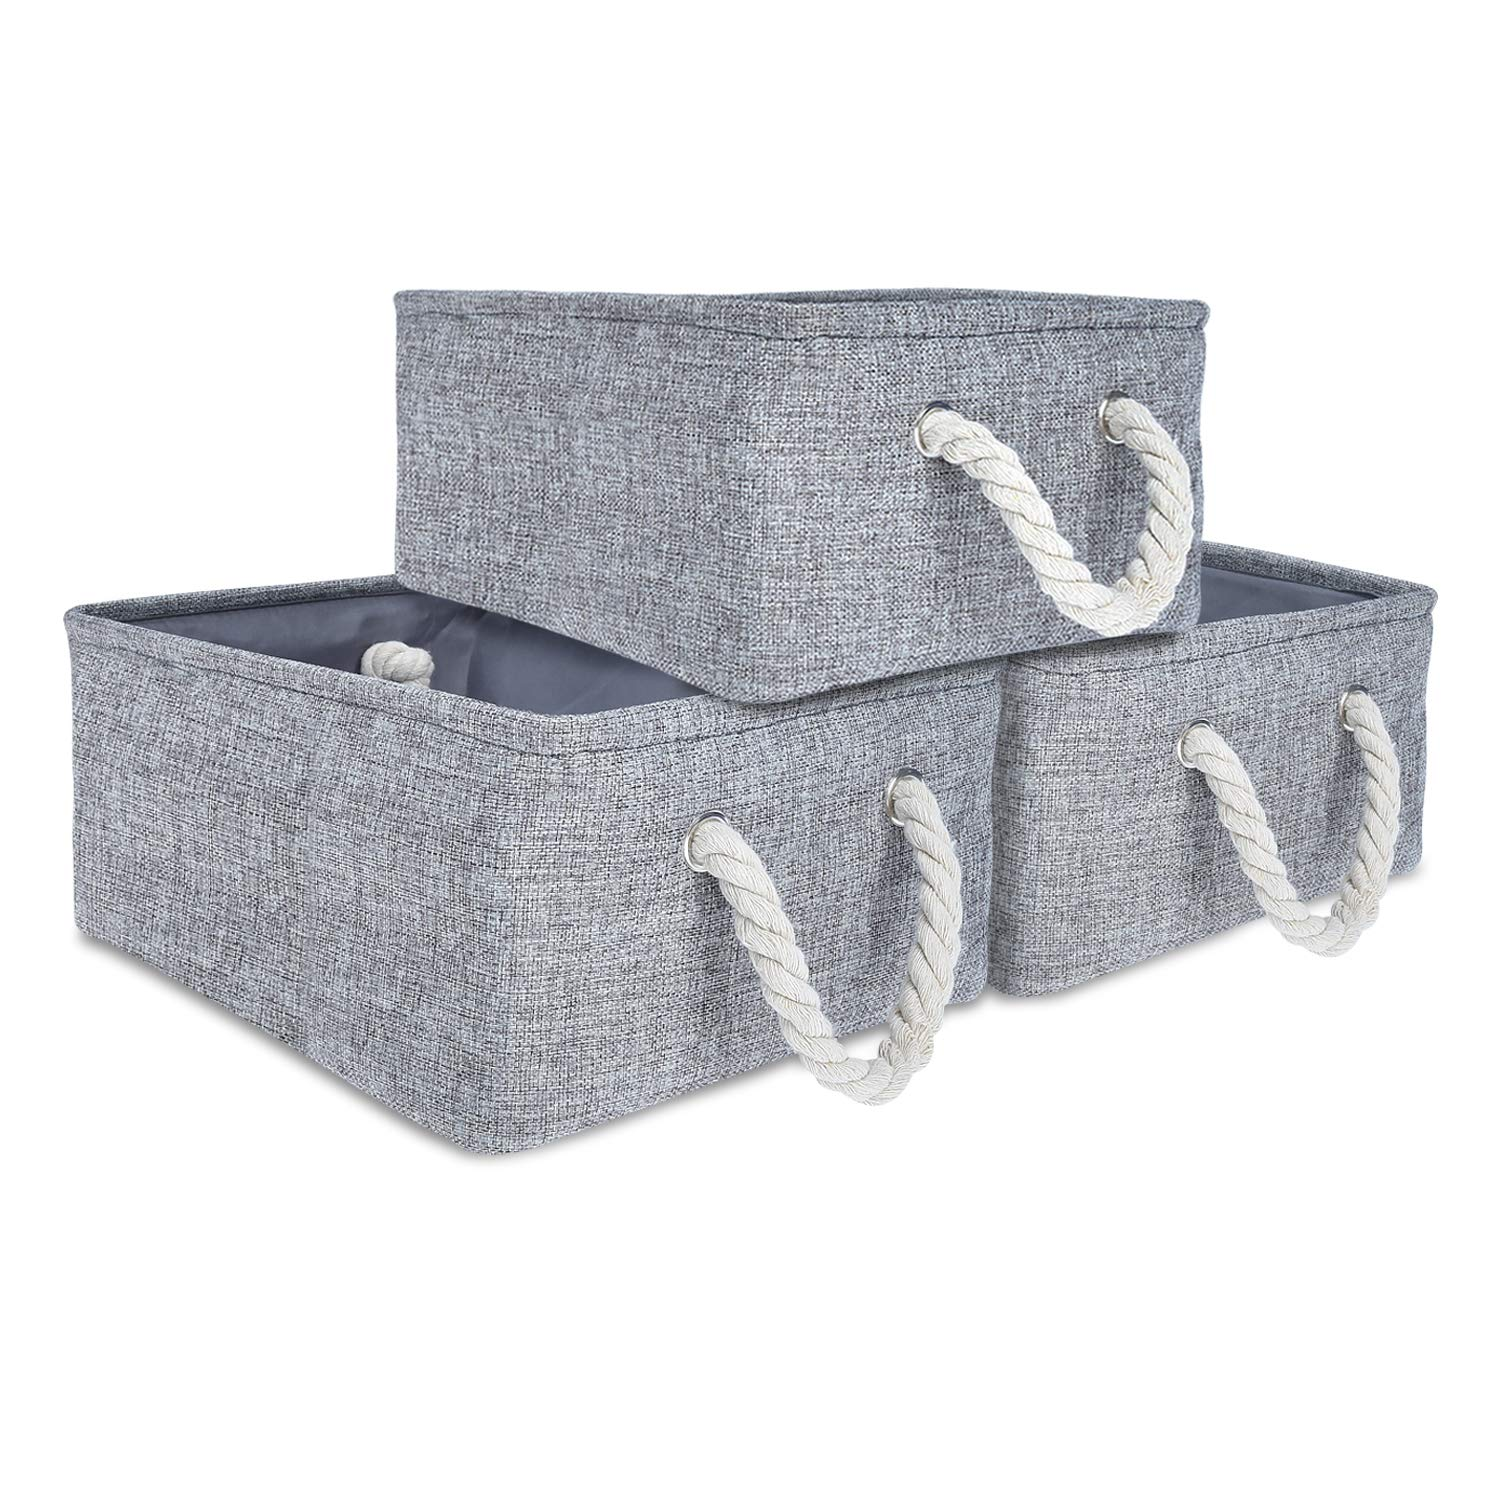 Expo Essential -3 Pack - 14''x11''x6'' Collapsible Storage Baskets Linen Bin Cube Foldable Toy Organizer, Bathroom Kitchen Fabric Storage with Dual Rope Handles